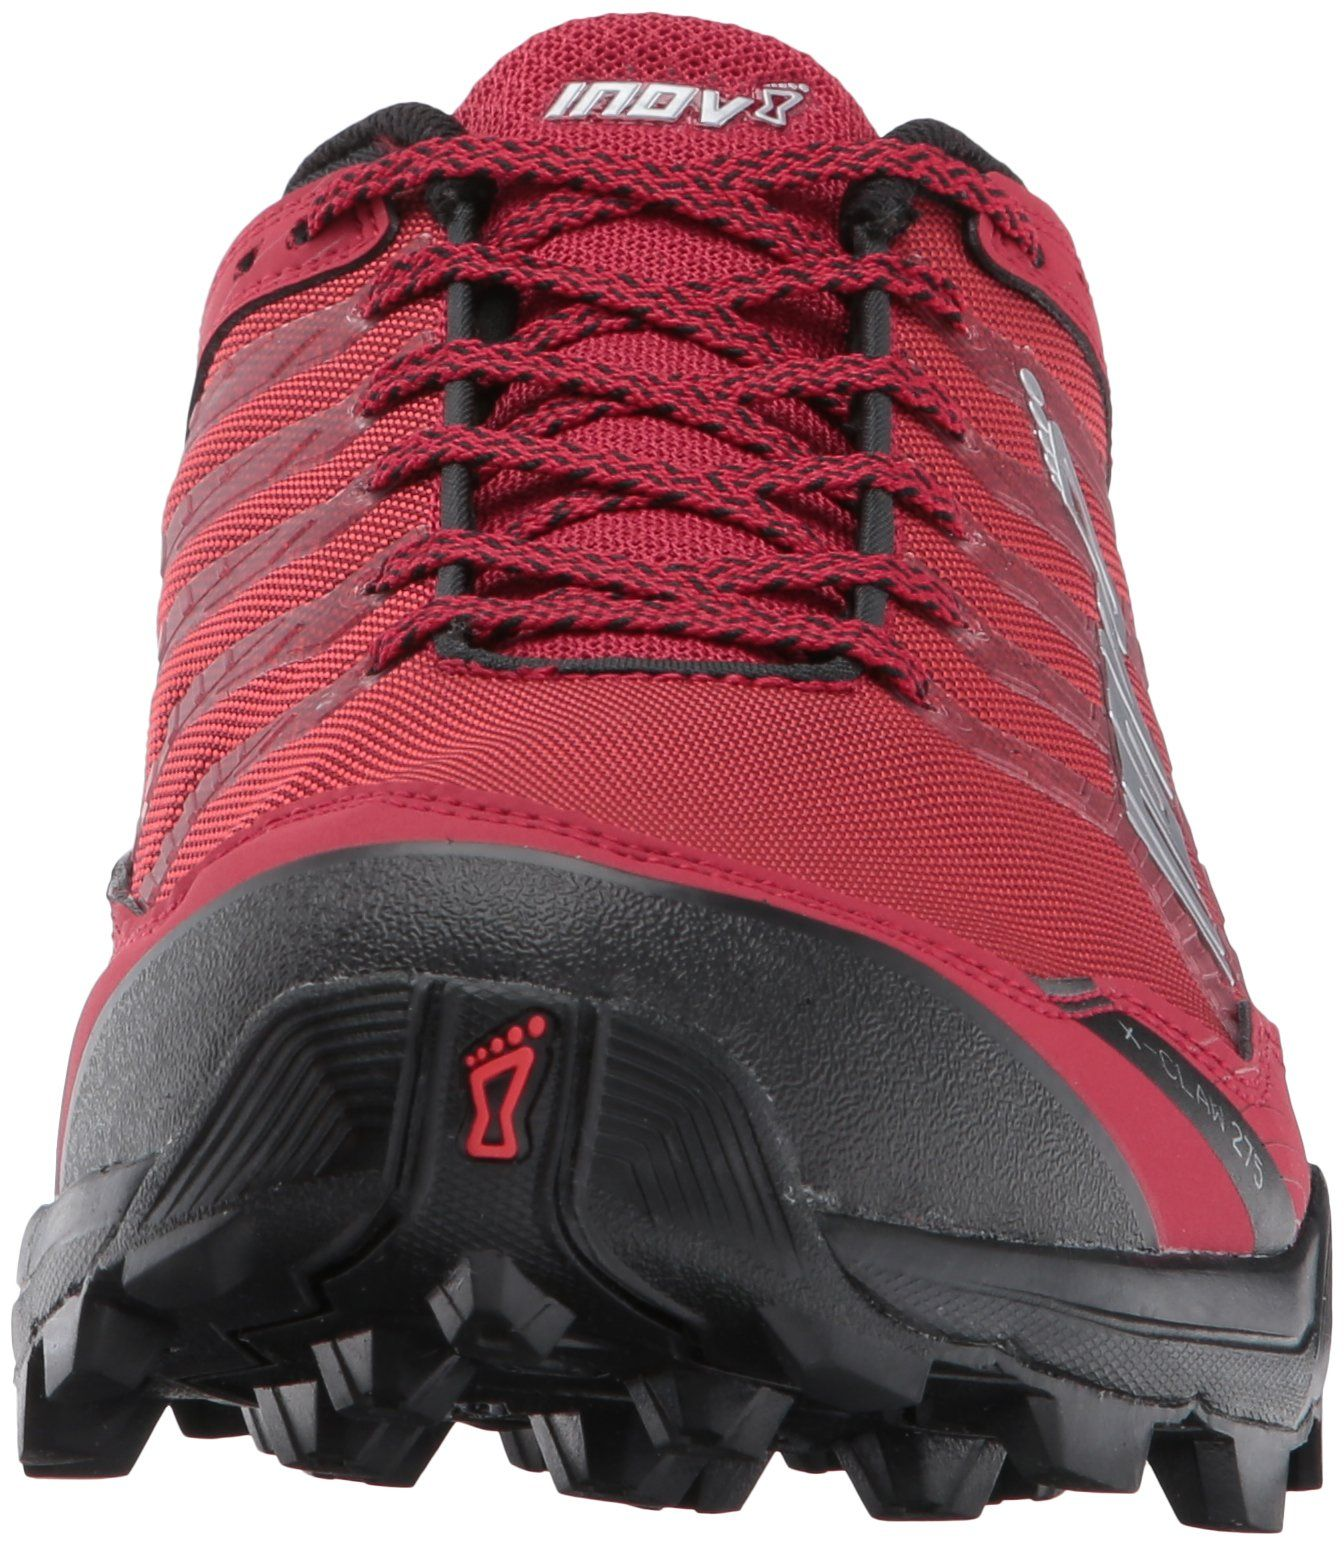 28911e2f10fe9 Inov8 Mens XClaw 275 M Trail Running Shoe Red/Black 10 D US * See ...